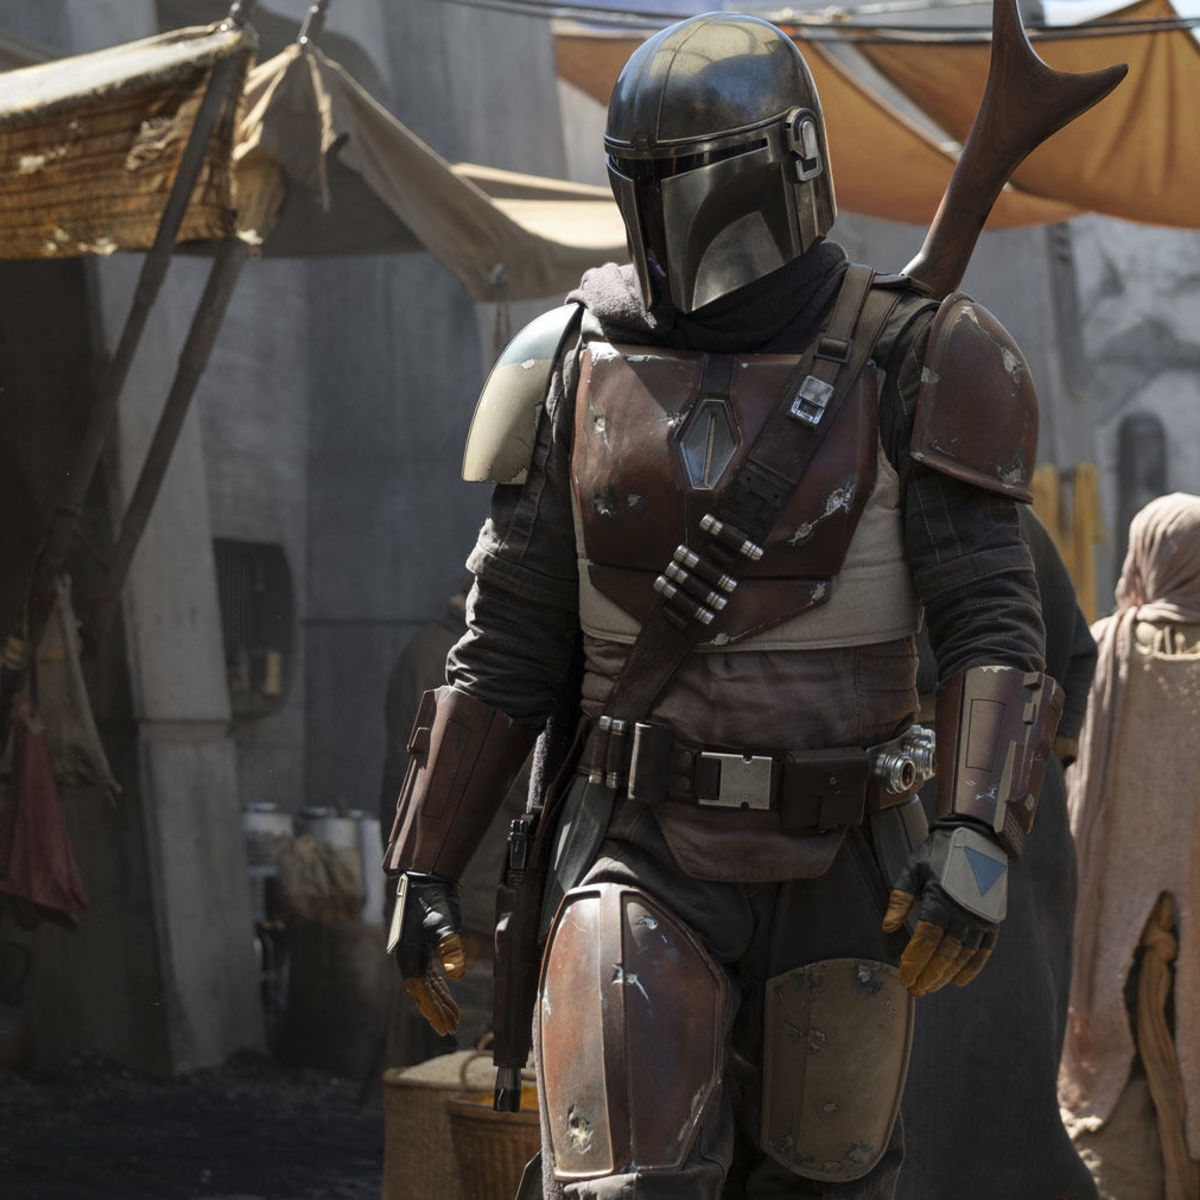 The Mandalorian Full Eps : the new star wars show is called the mandalorian we know ~ Pogadajmy.info Styles, Décorations et Voitures